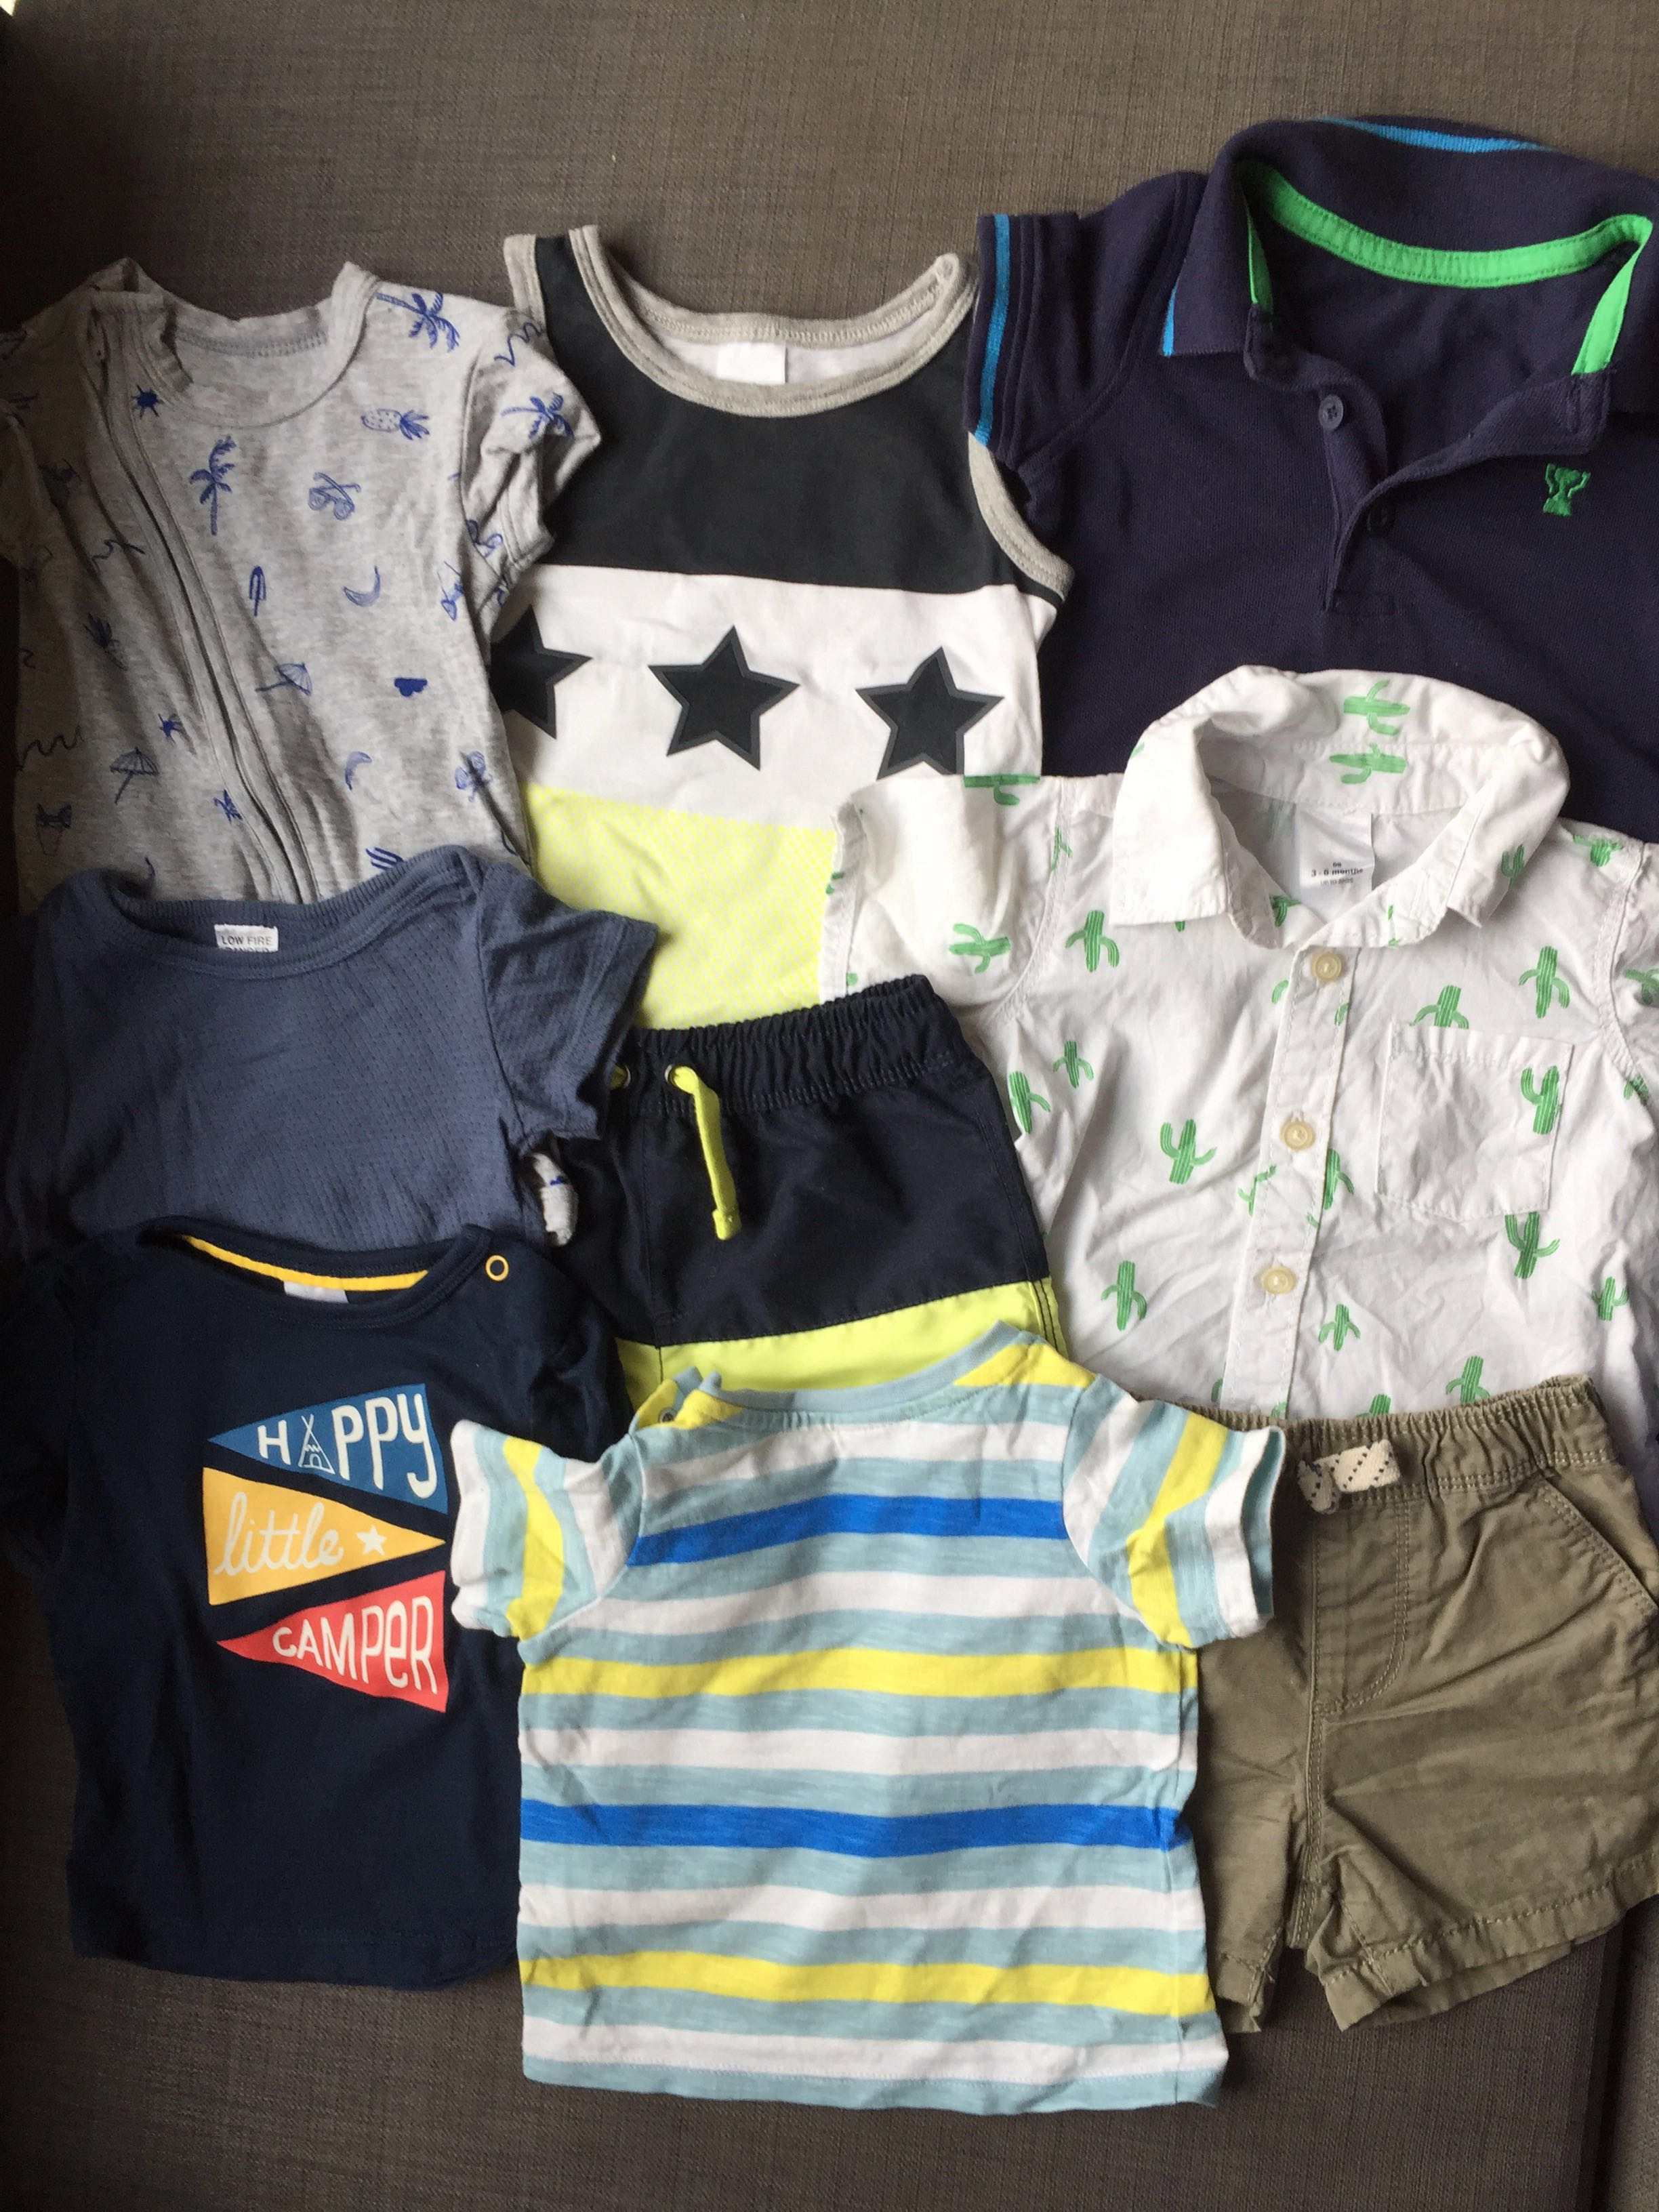 e8ef23d476ae Boys bundle 3-6 months, Babies & Kids, Babies Apparel on Carousell